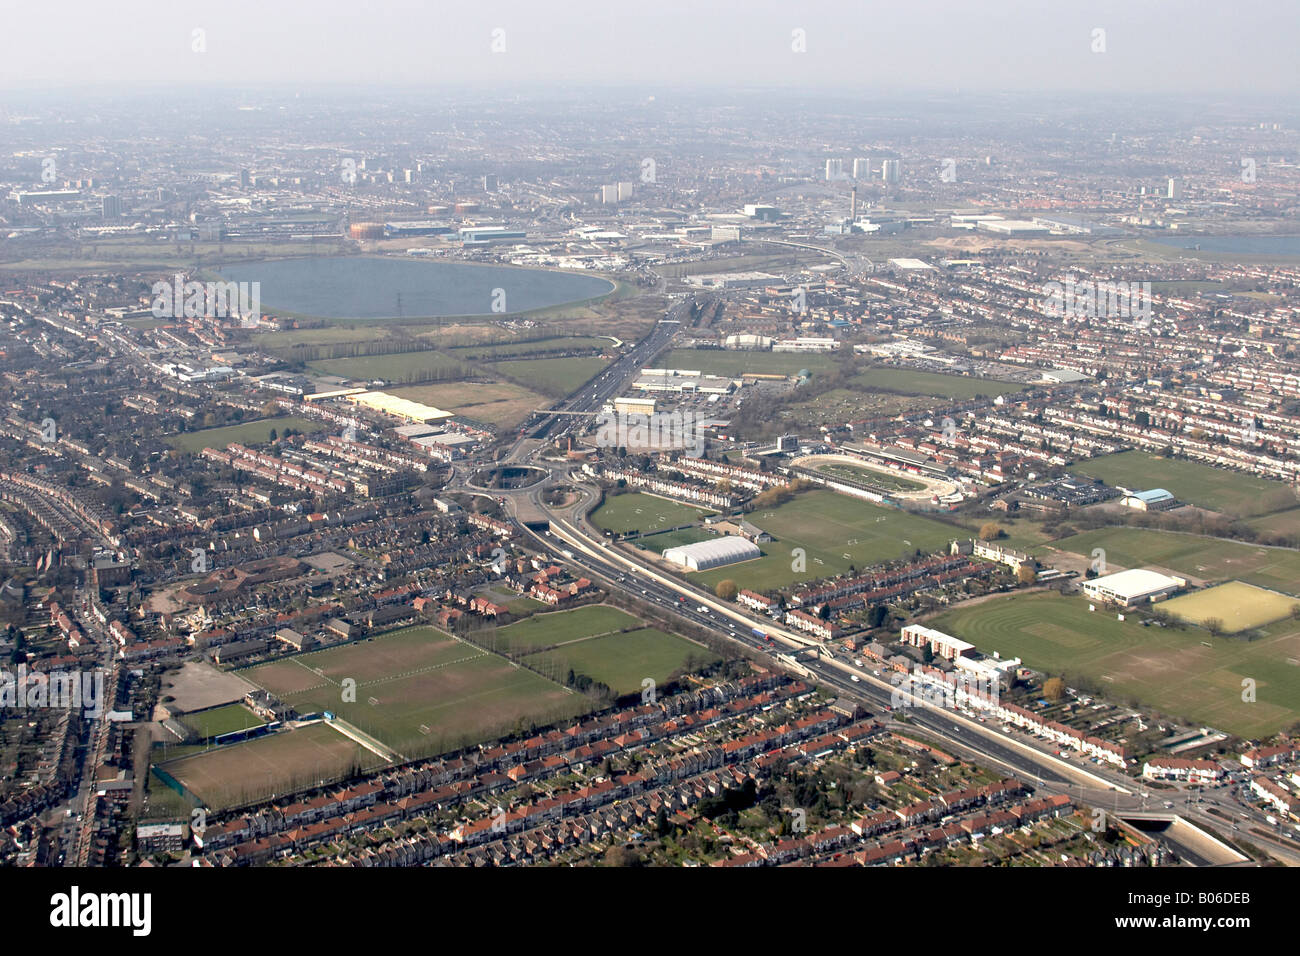 Aerial view north west of Crooked Billet A406 Banbury Reservoir Walthamstow Greyhound race track suburban houses - Stock Image